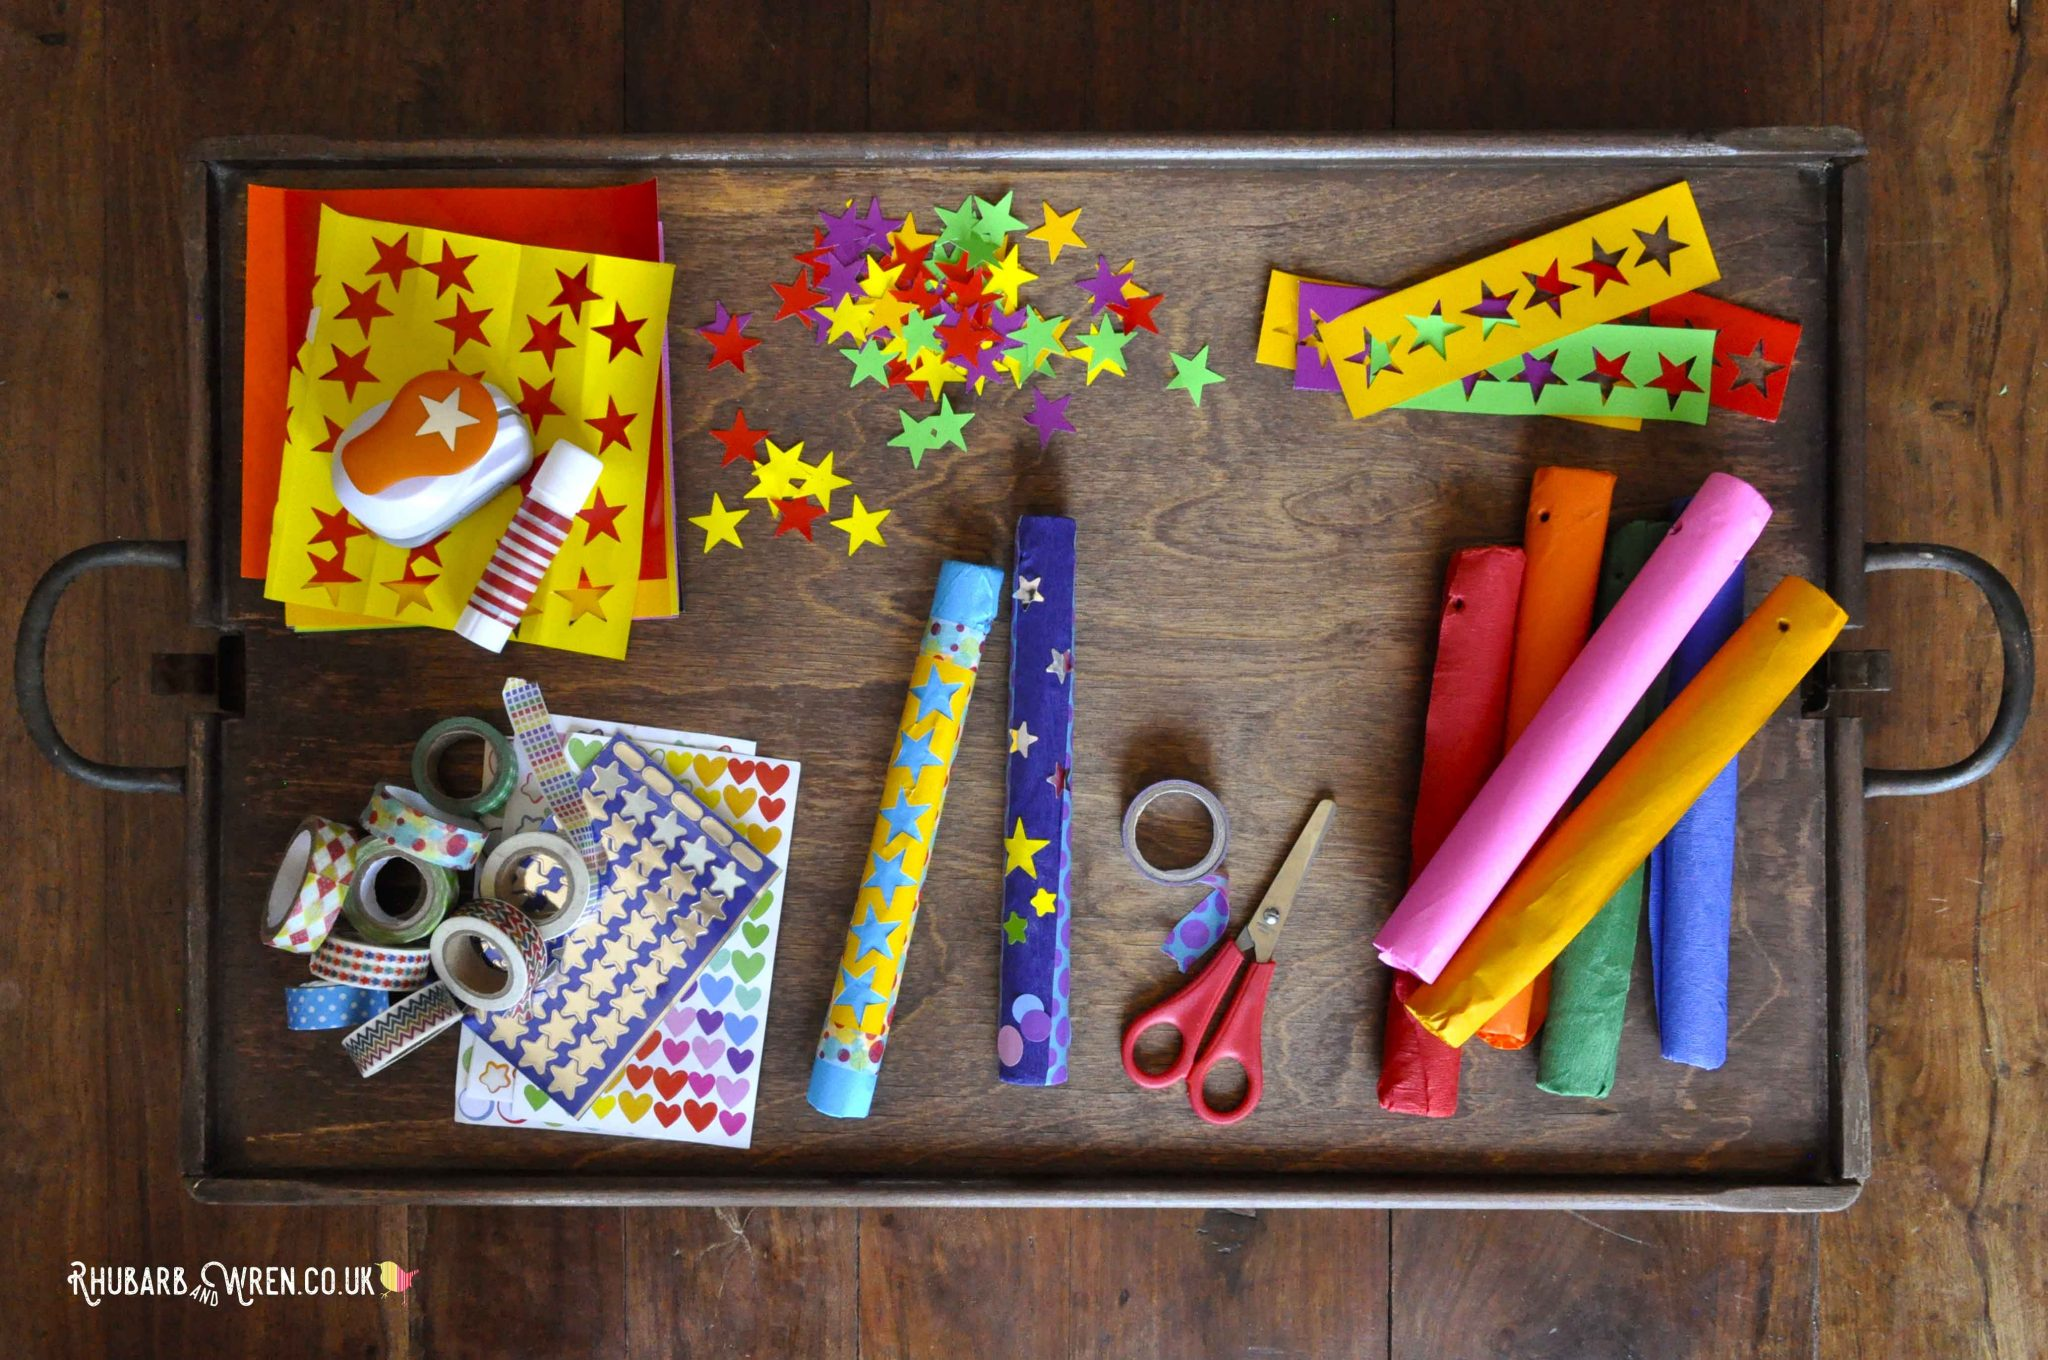 A paper fireworks craft - decorating rocket hand kites.